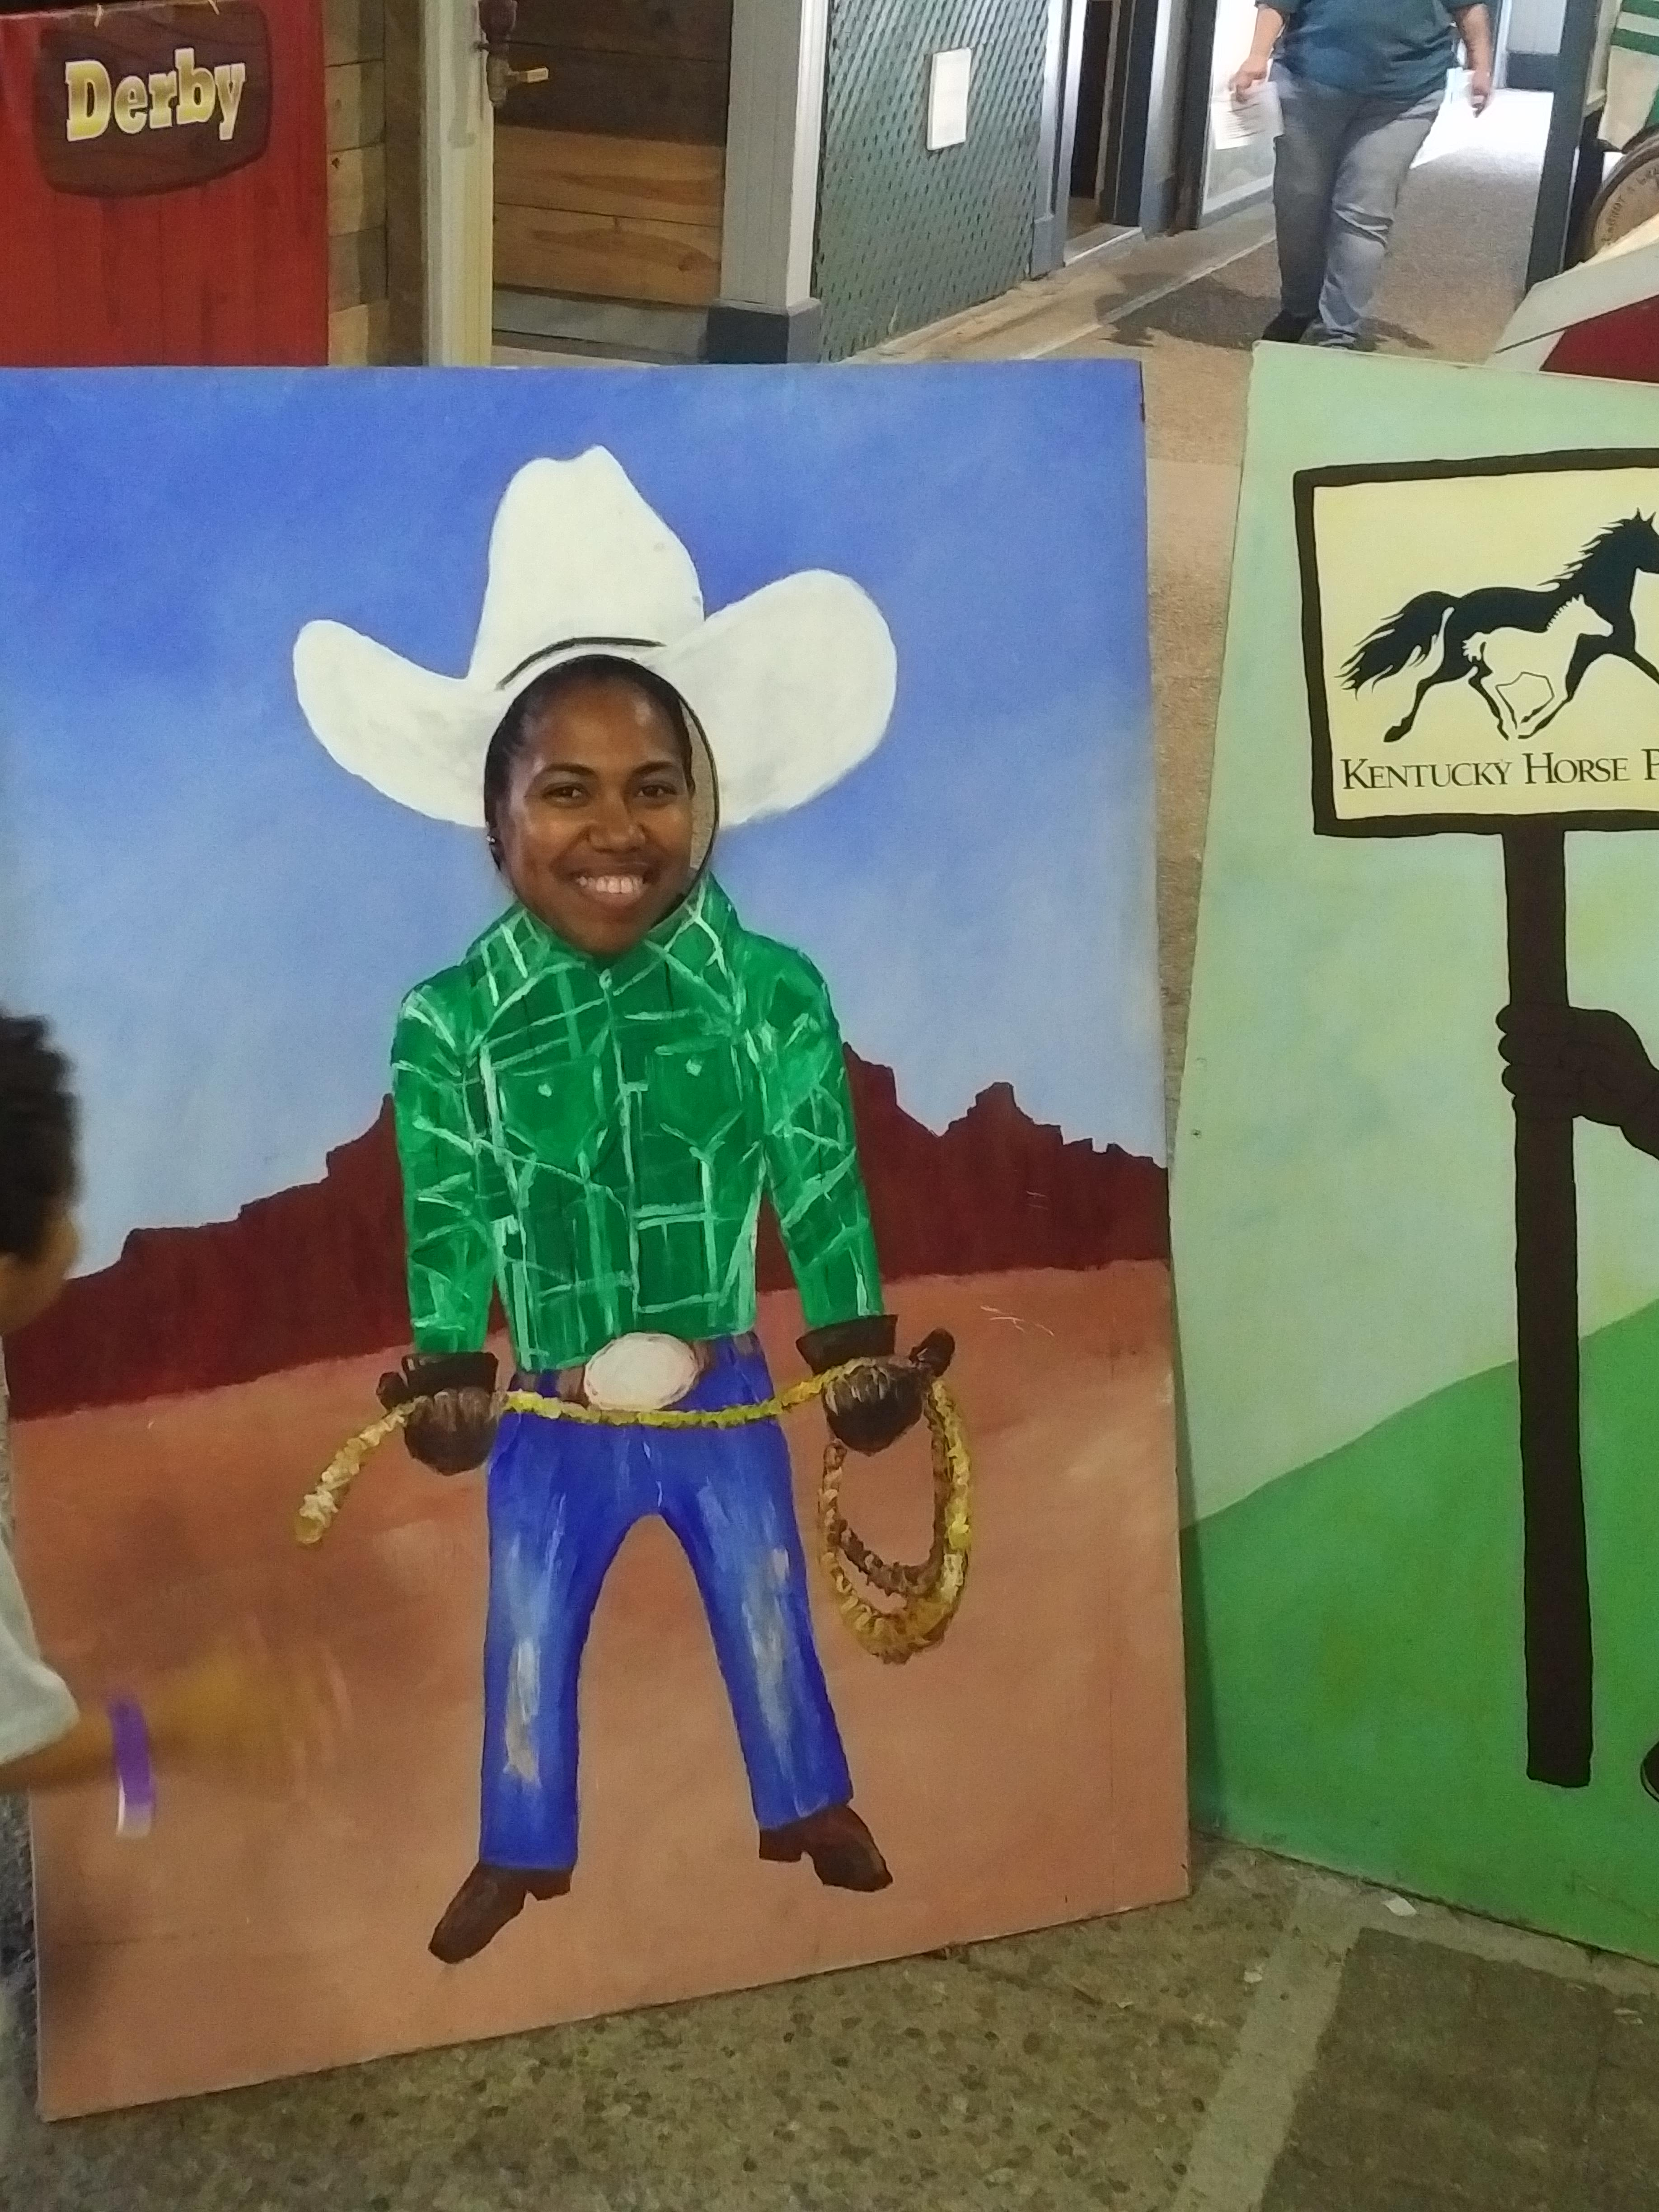 2018 KY Lexington Kentucky Horse Park Museum of the Horse Arabian horse exhibit cutouts Shay cowgirl